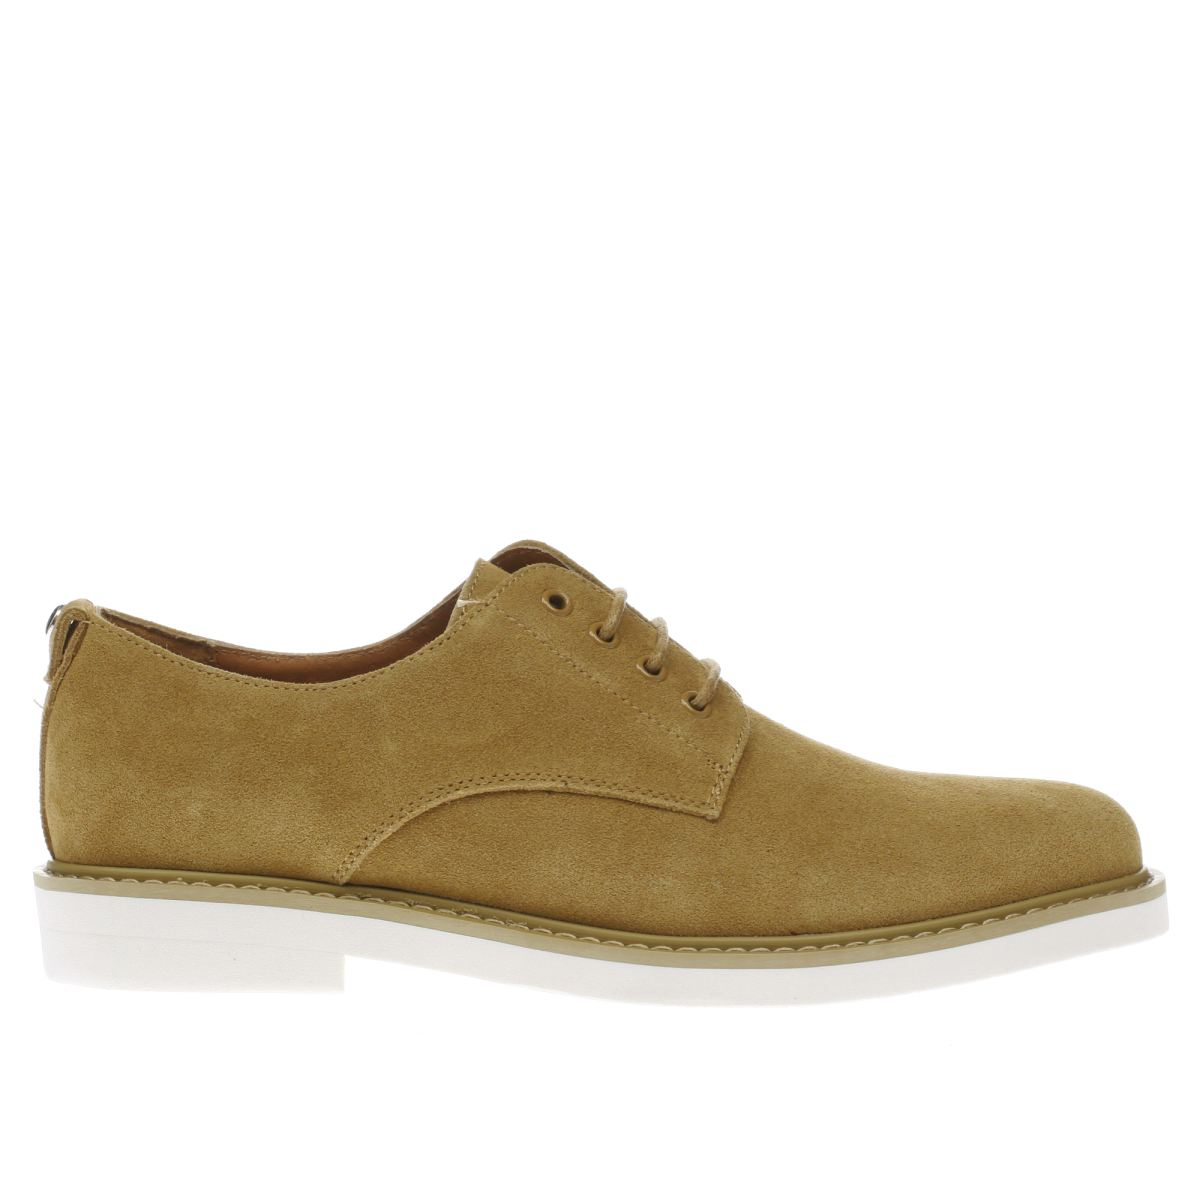 Peter Werth Peter Werth Tan Pegg Derby Shoes